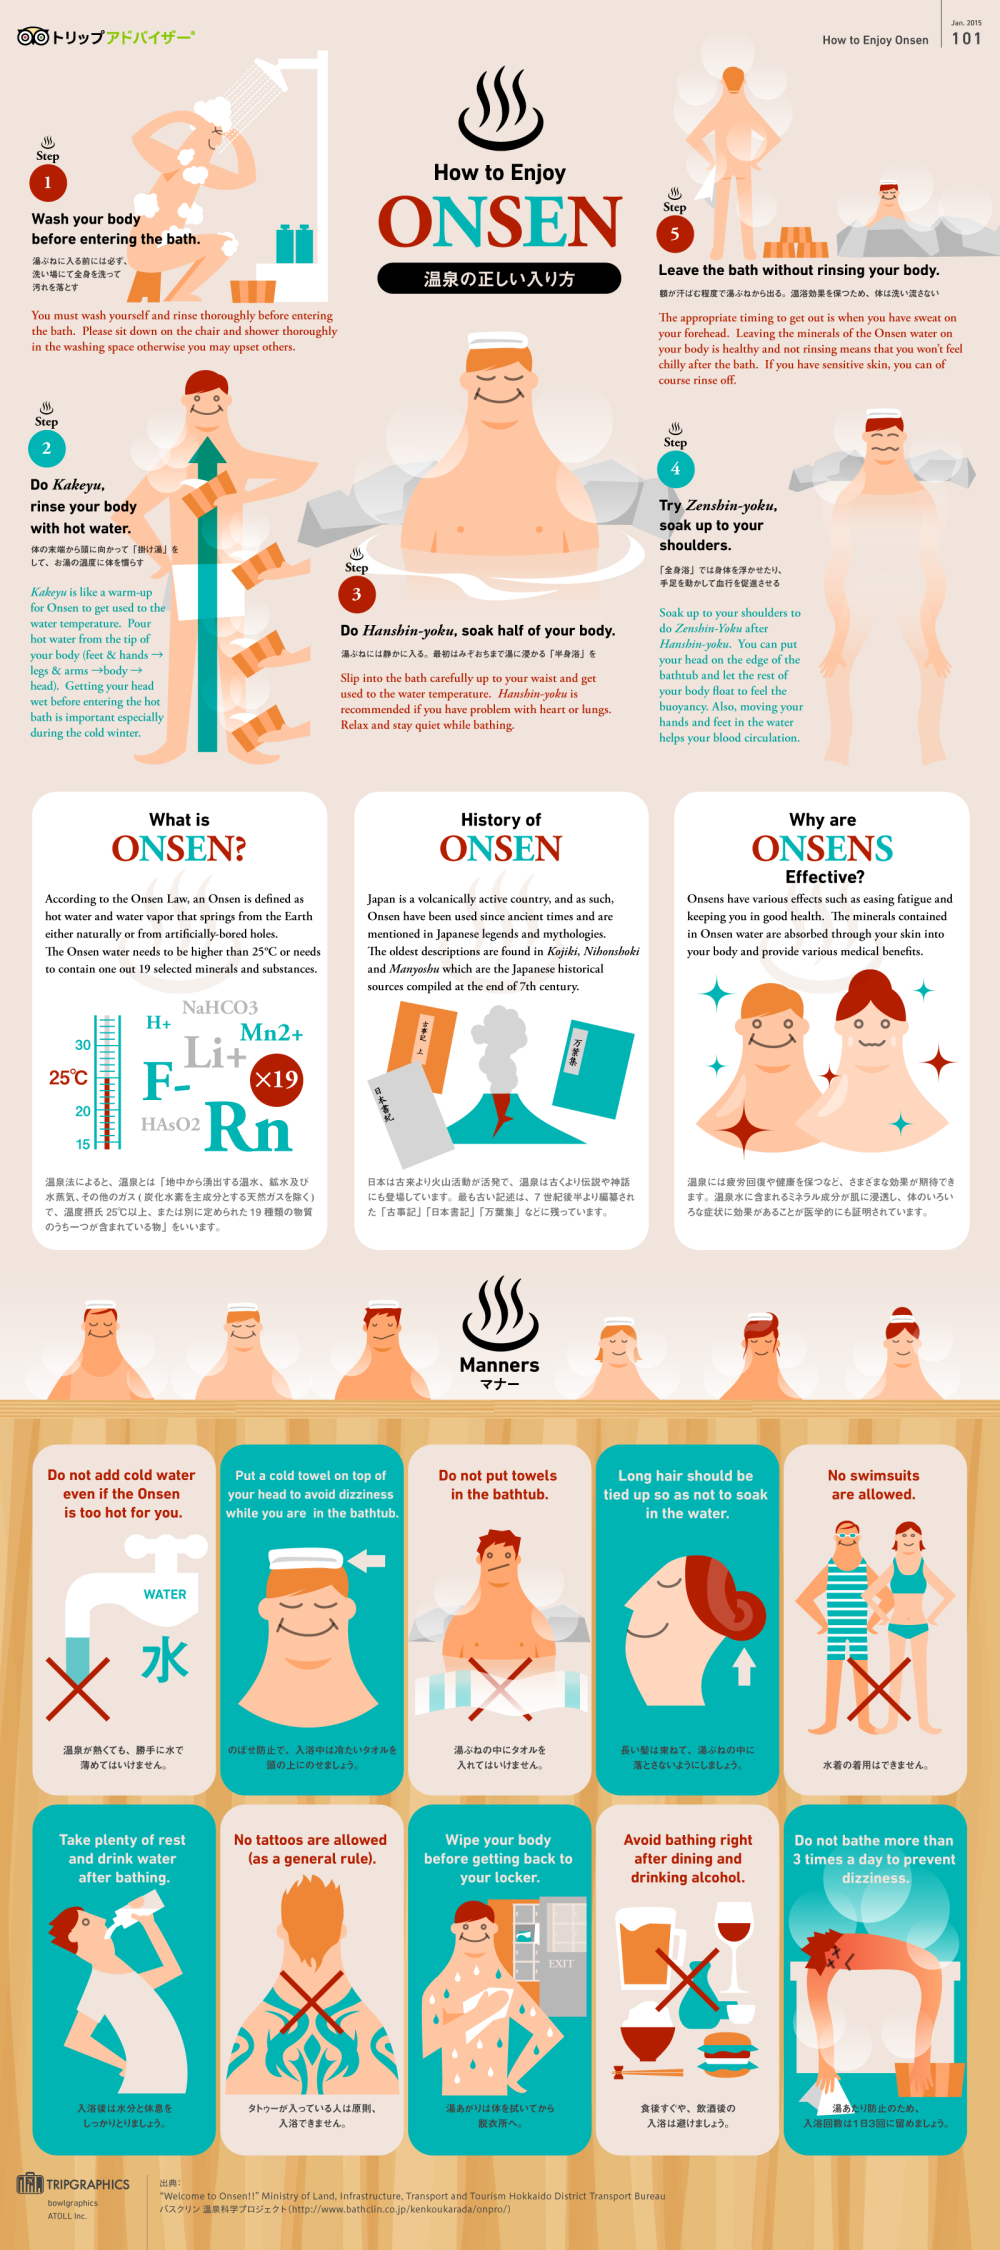 onsen etiquette / manners by tripgraphics